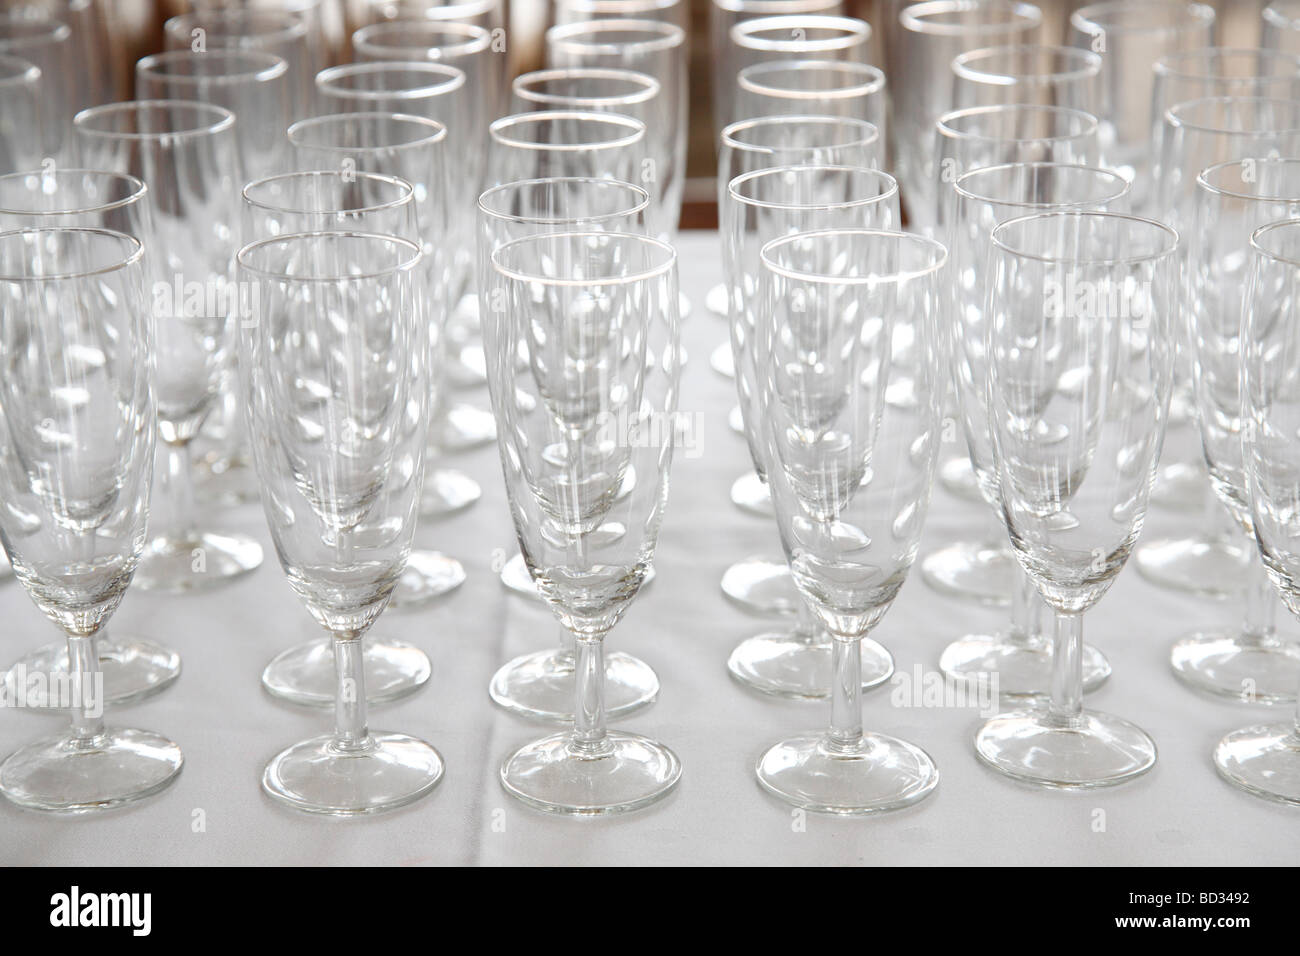 many empty champagne glasses - Stock Image